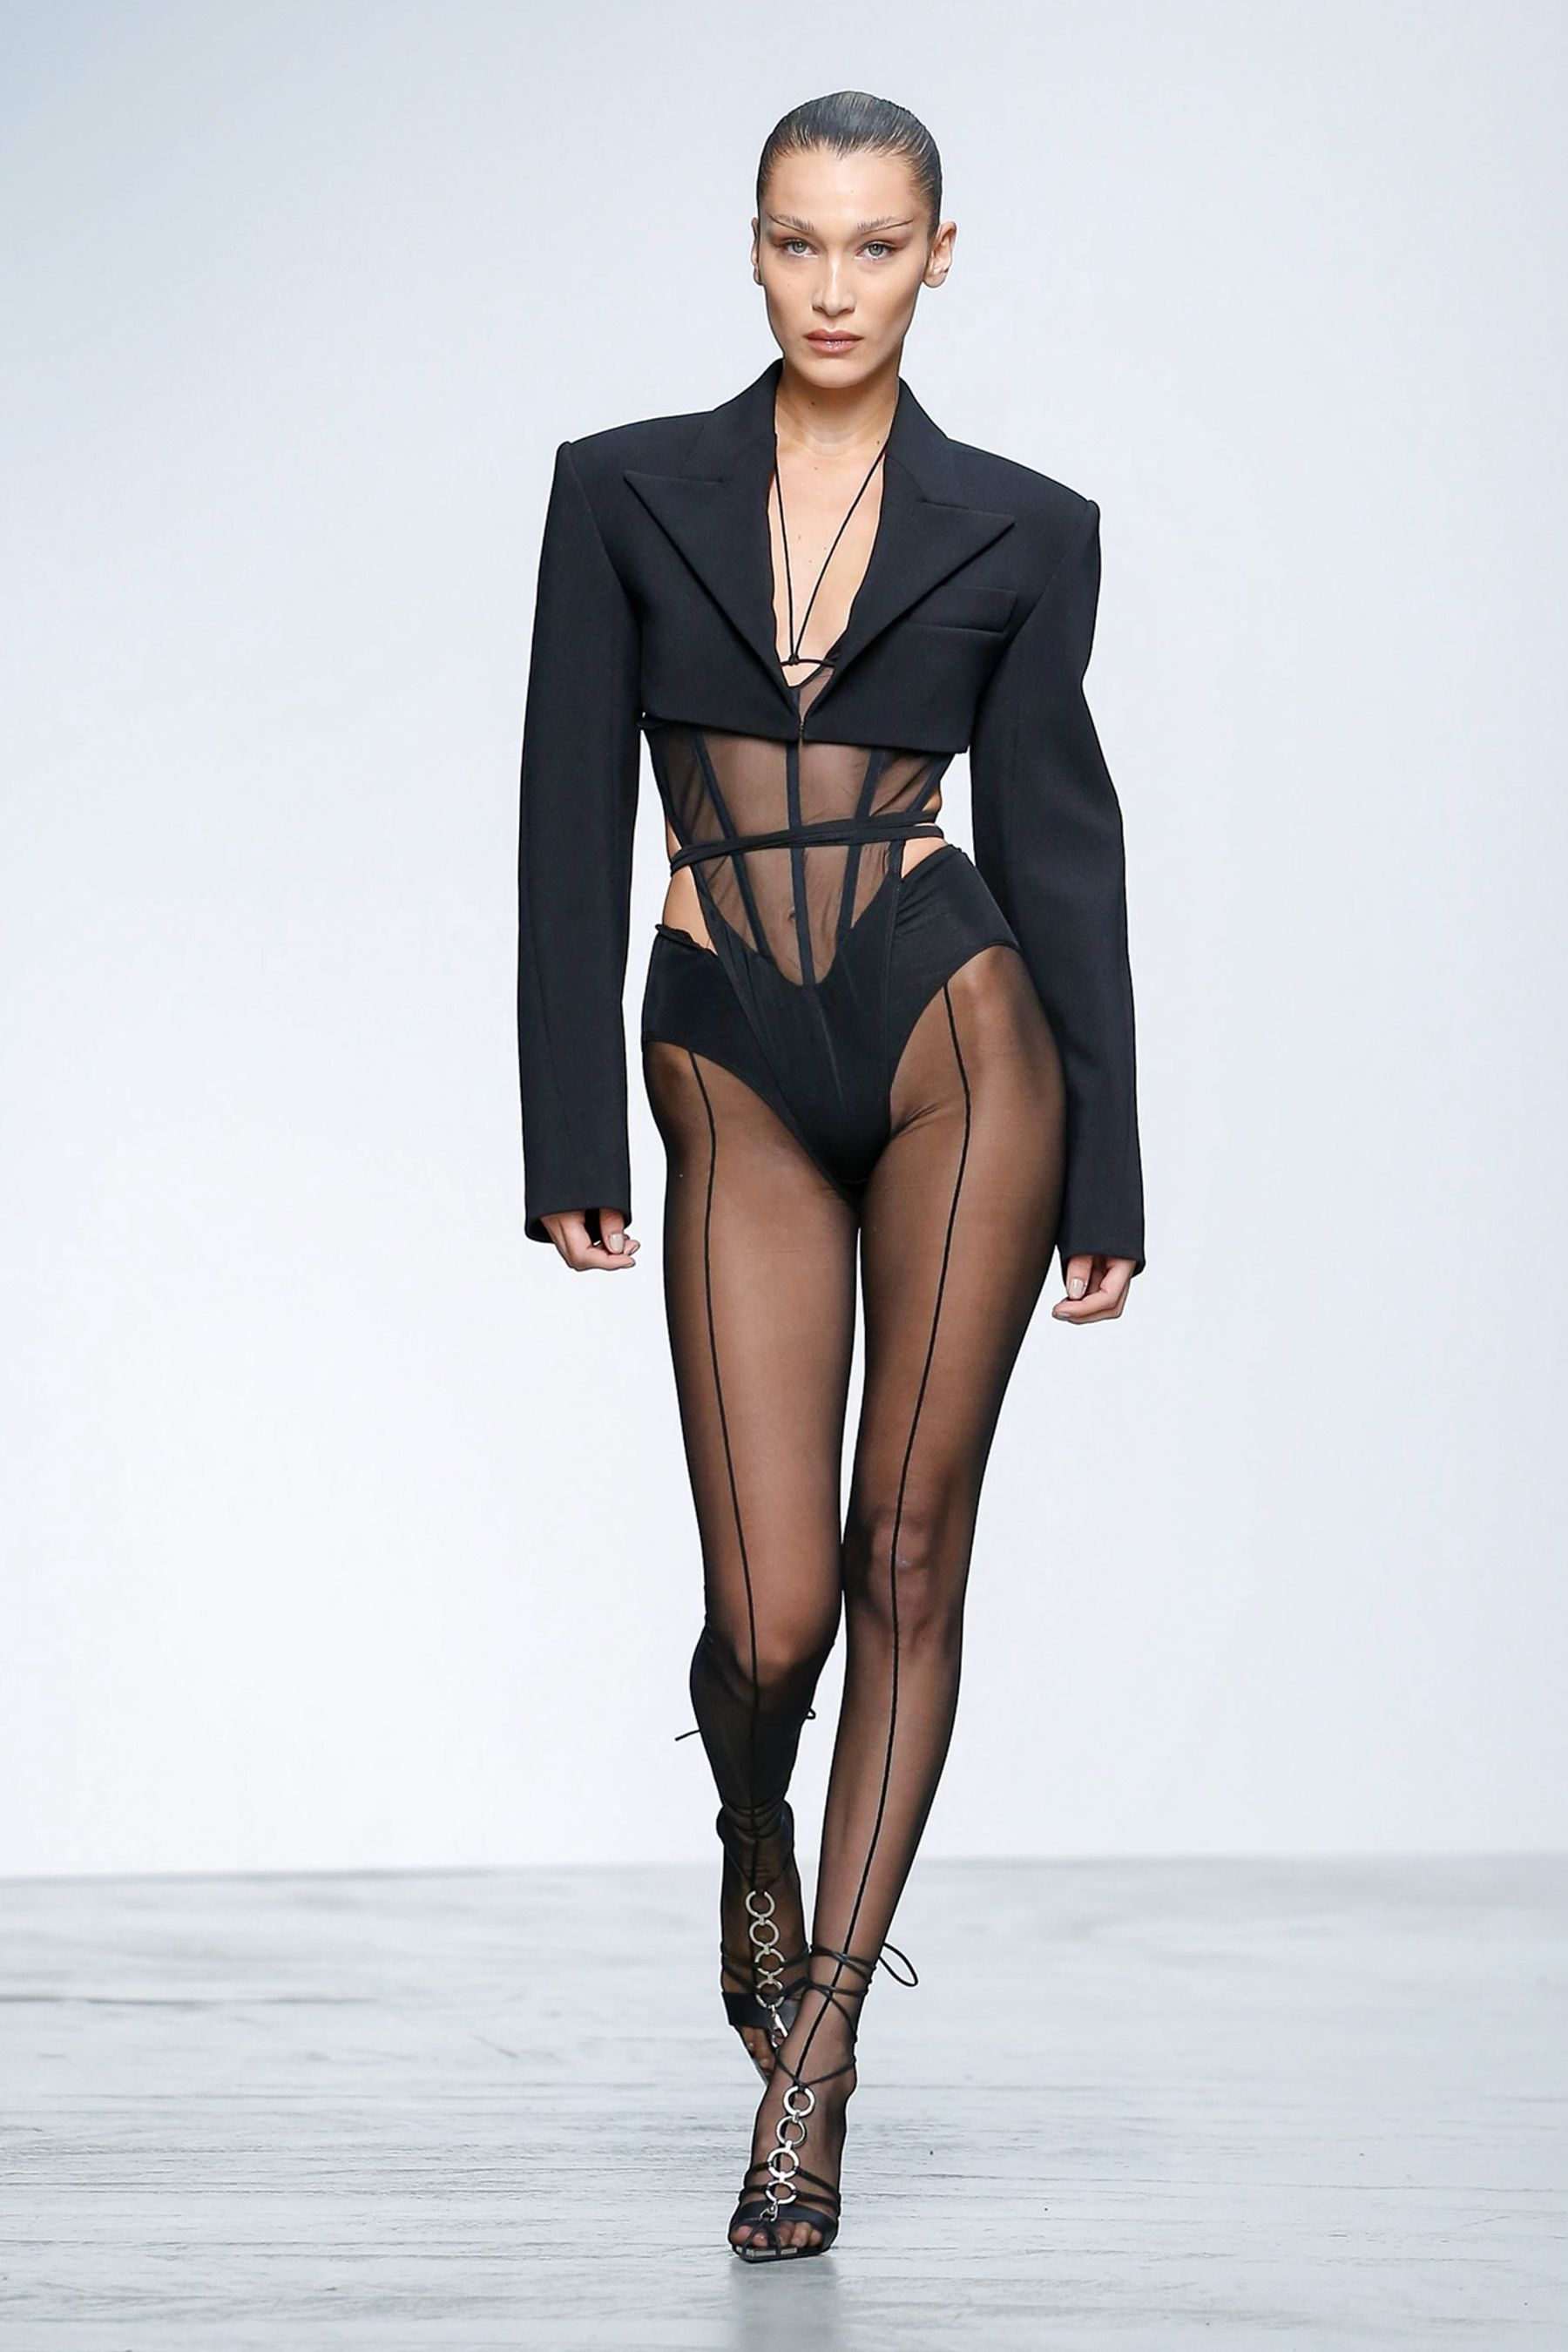 Mugler Spring Summer 2020 Fashion Show